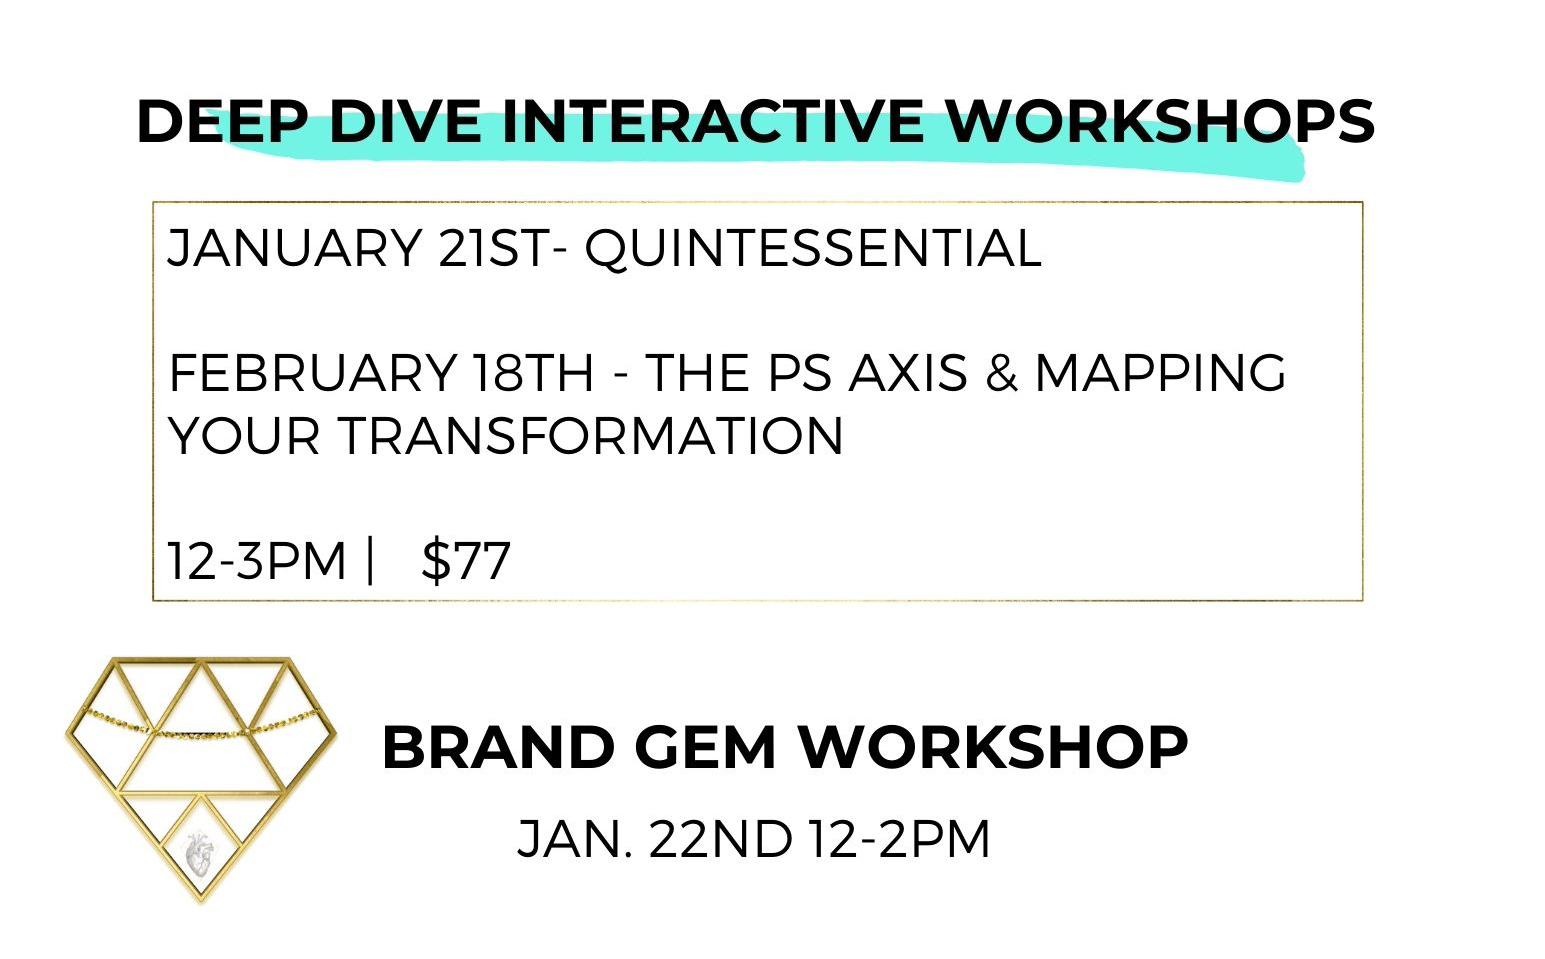 Upcoming Brand Gem & Creative Lab Workshops from Catalyst Studios